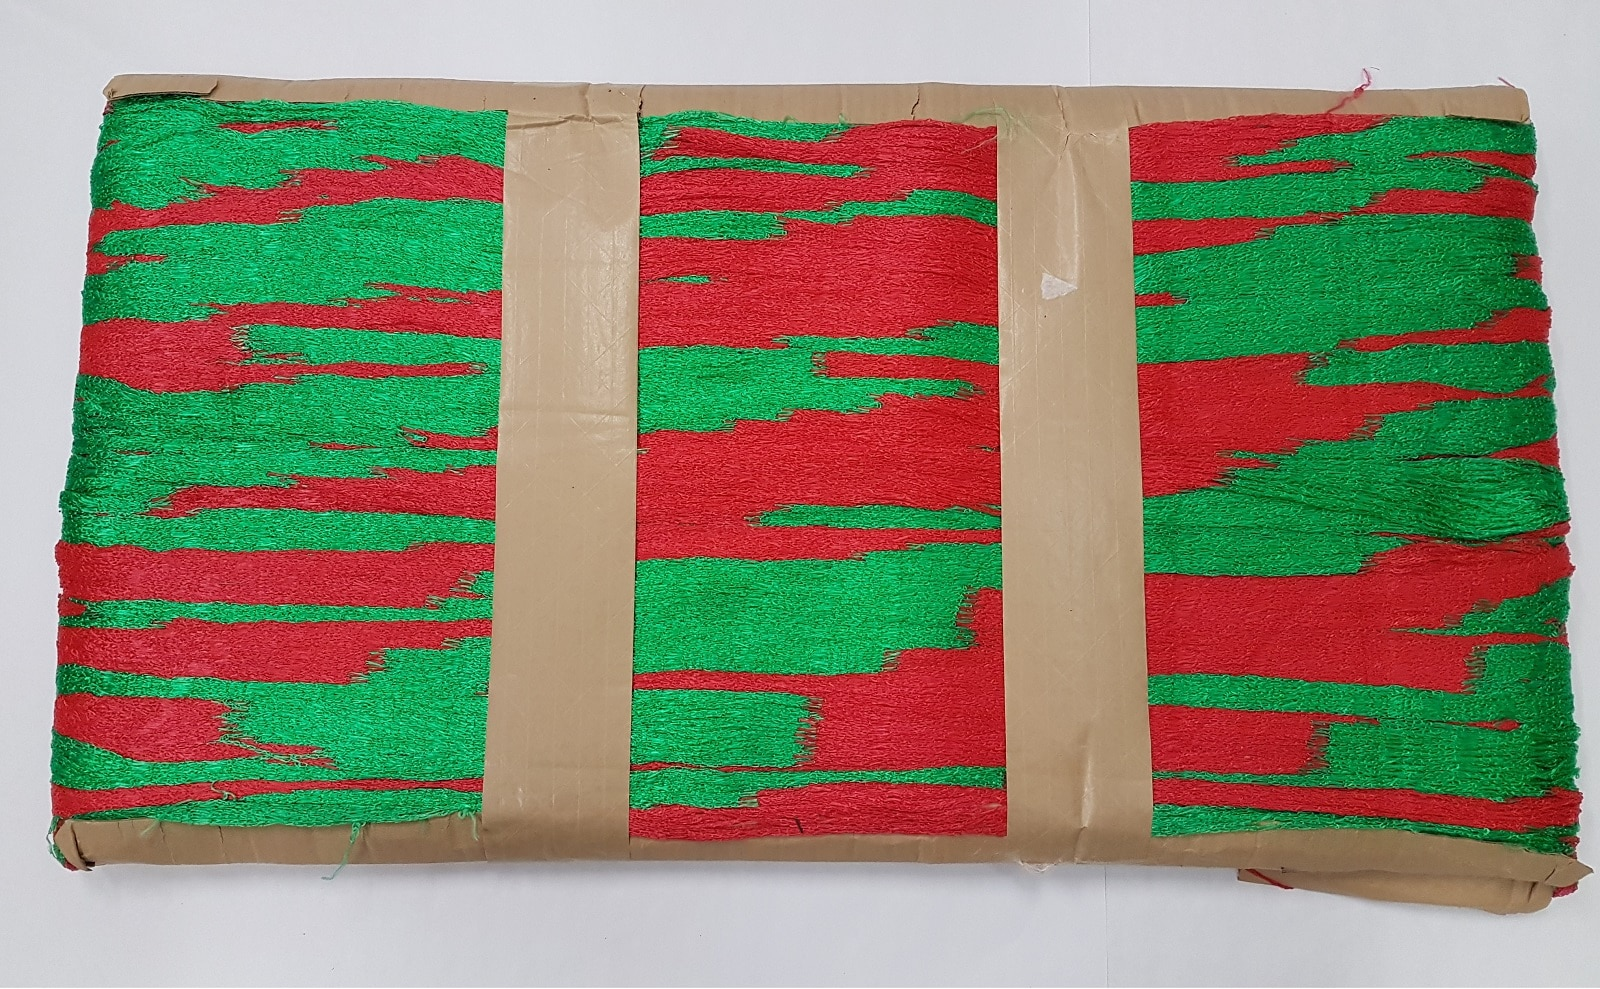 18 Knitted Netting – Colour – Red and Green